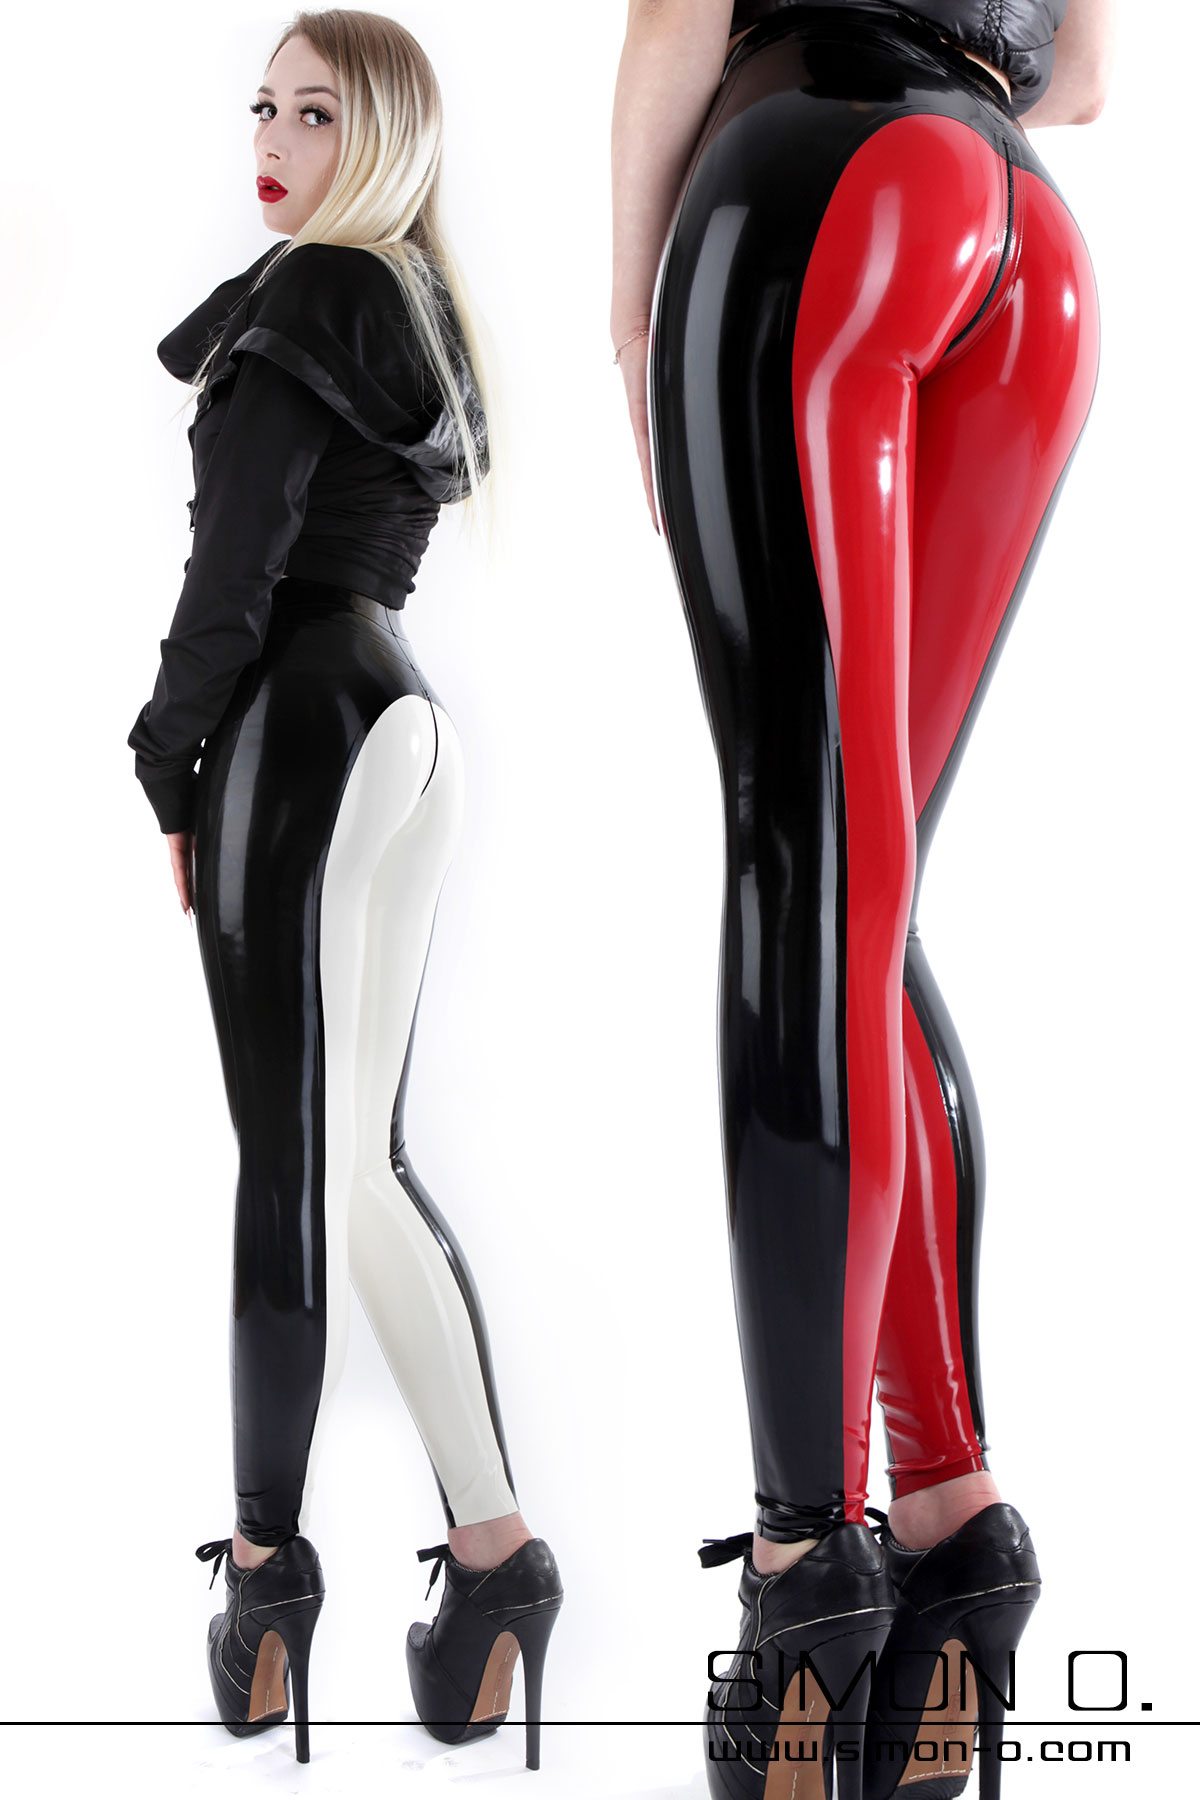 Skintight latex jodhpurs with zip in the cut area in the colour black with red